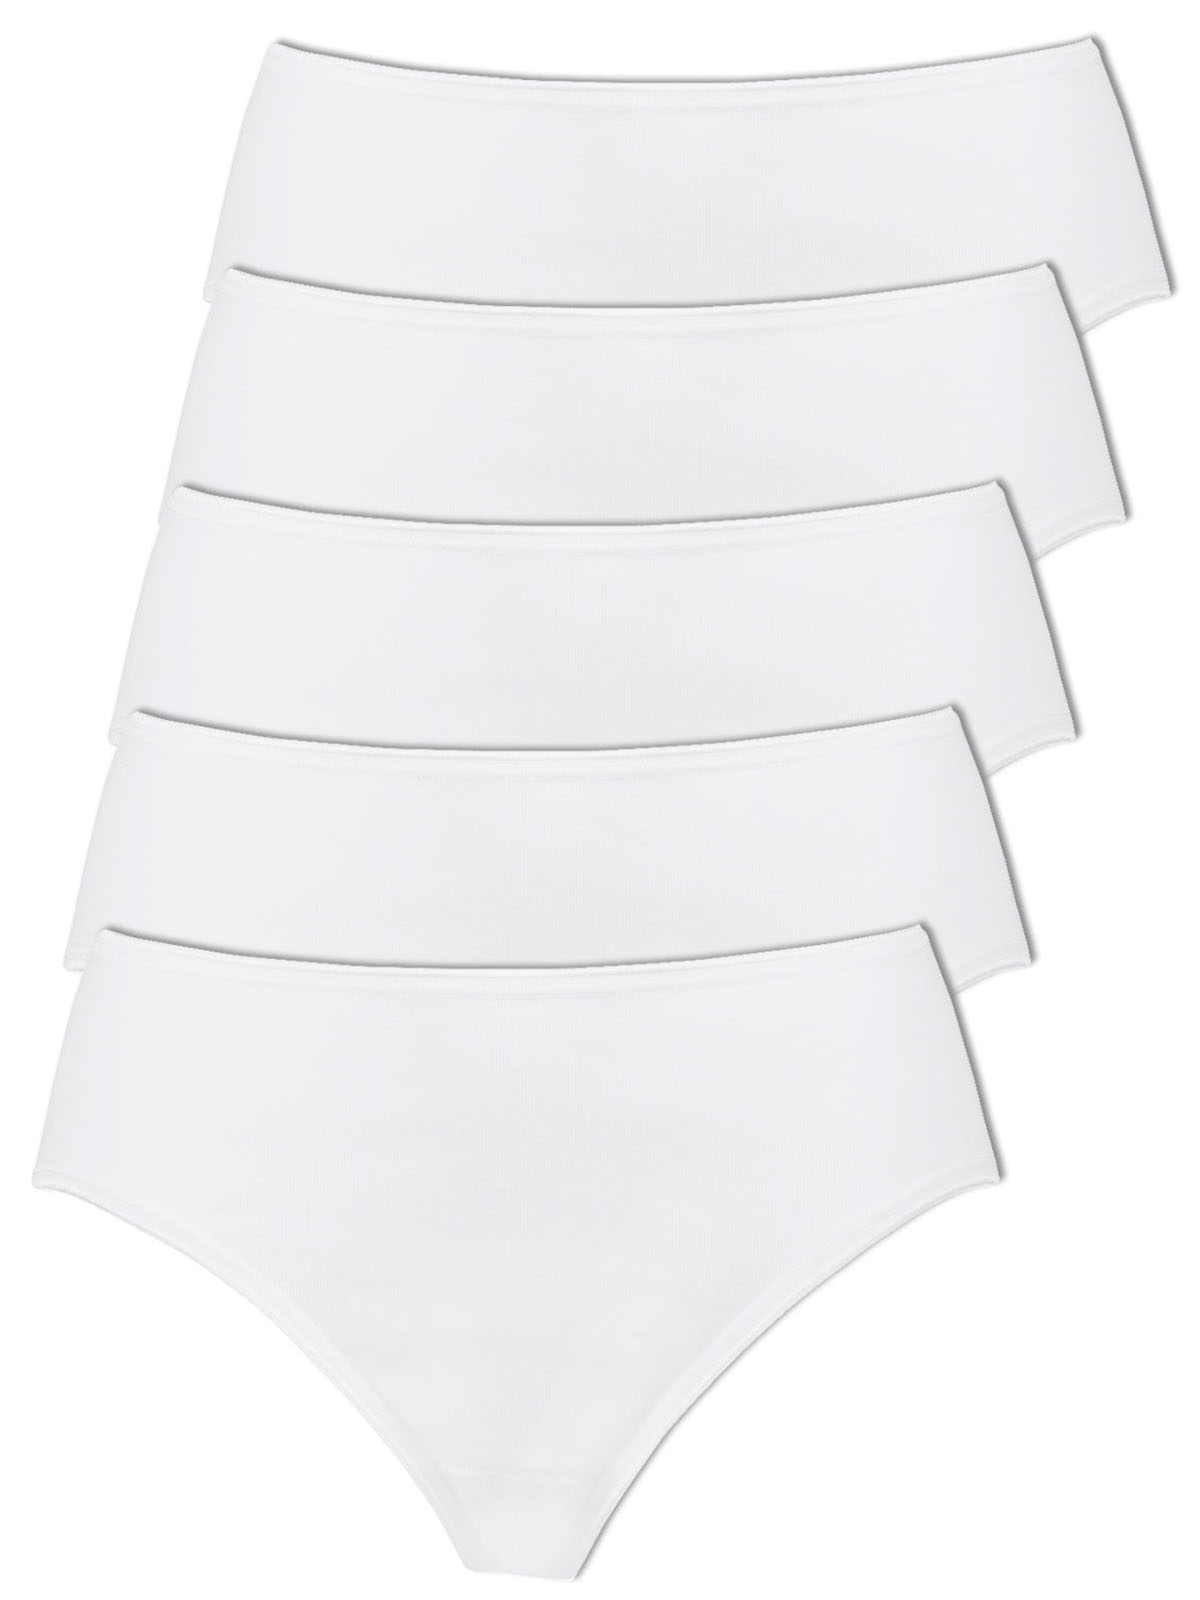 Naturana Pack of 5 Women's Briefs 802102